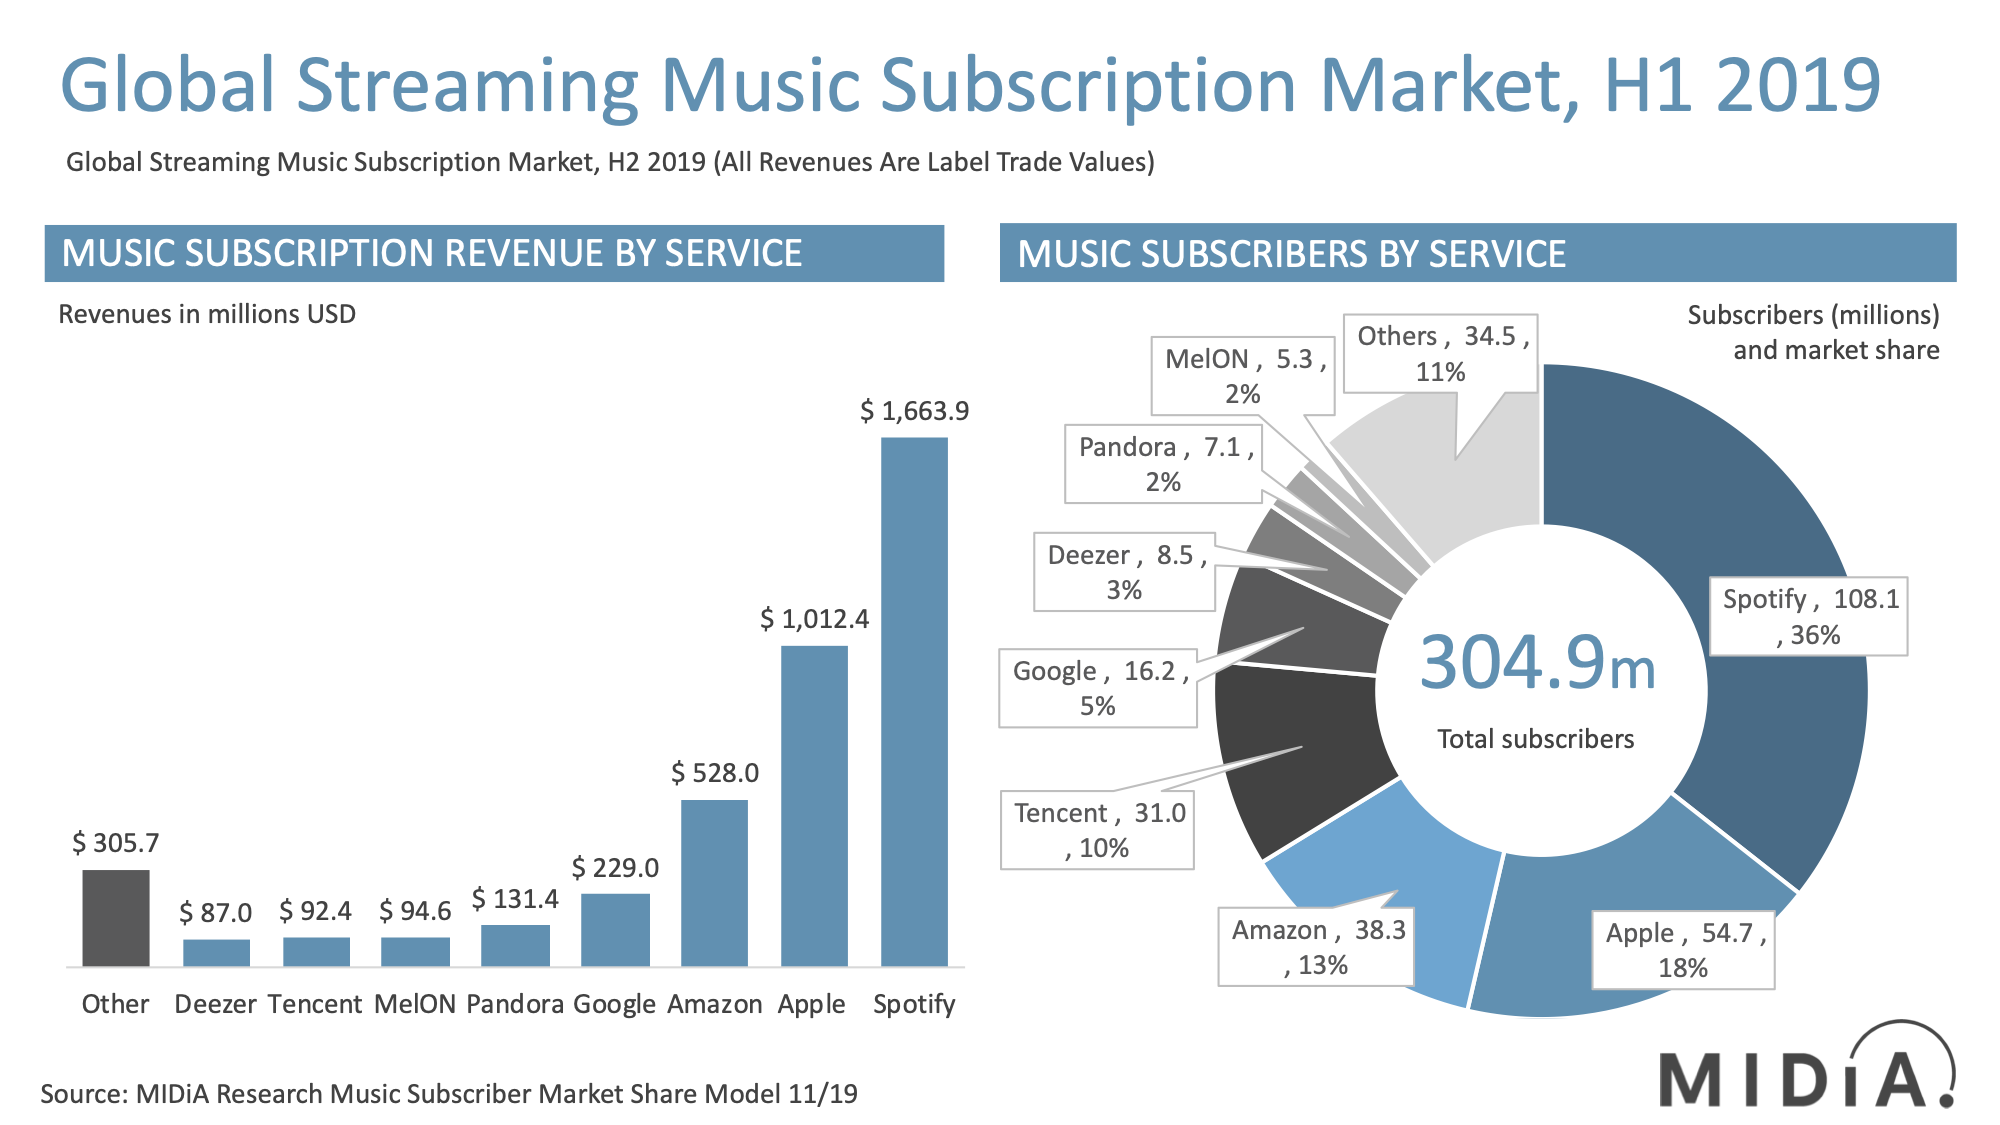 Music Subscriber Market Shares H1 2019